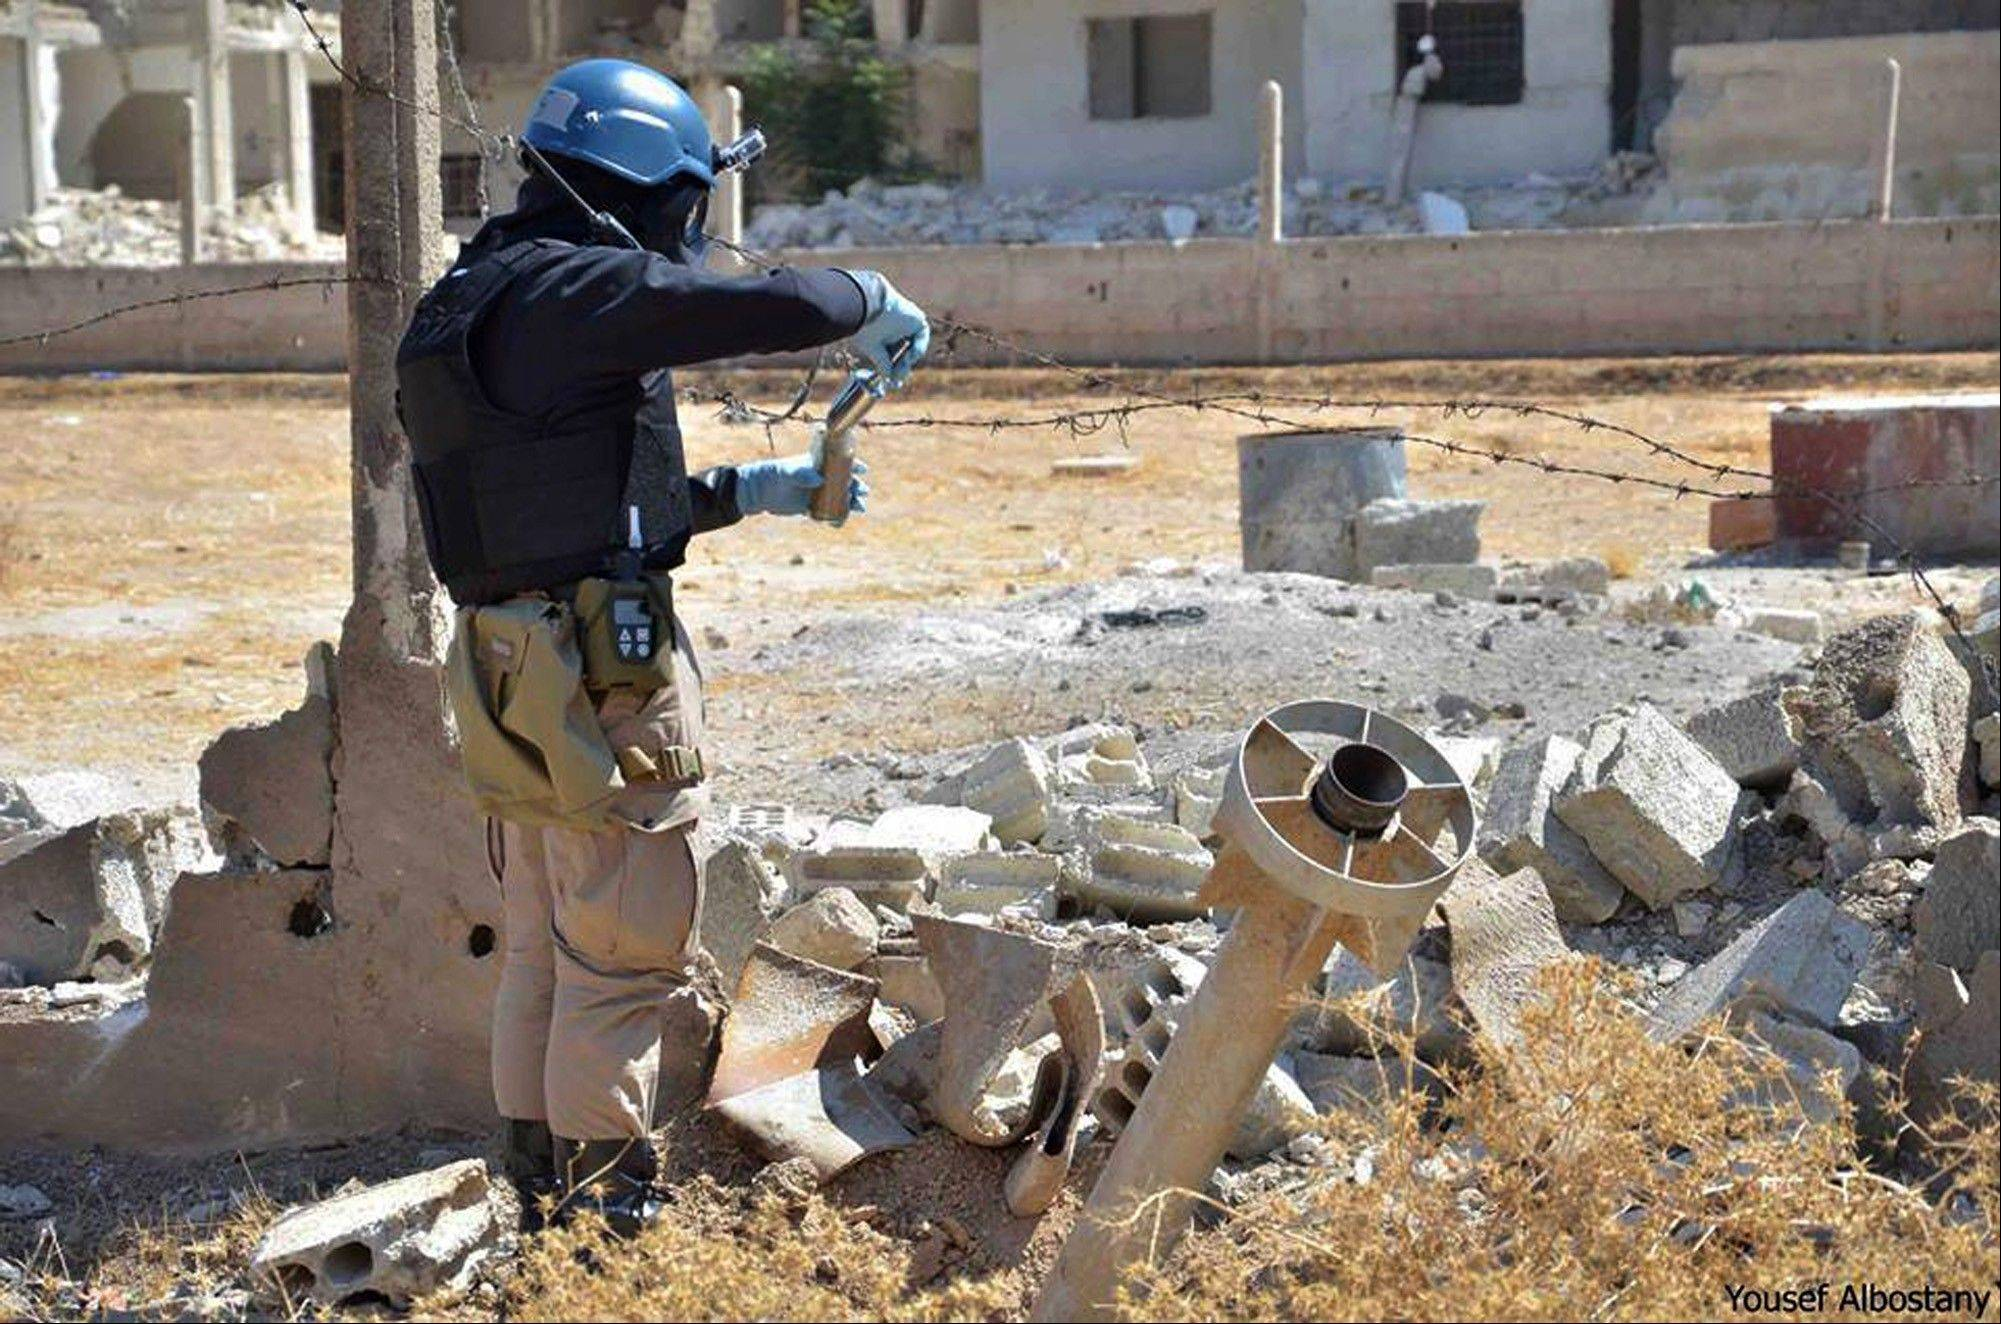 This image provided by the United Media Office of Arbeen shows a member of UN investigation team taking samples of sands near a part of a missile that could be one of the chemical rockets used in last week's suspected poison gas attack on Syrian civilians.